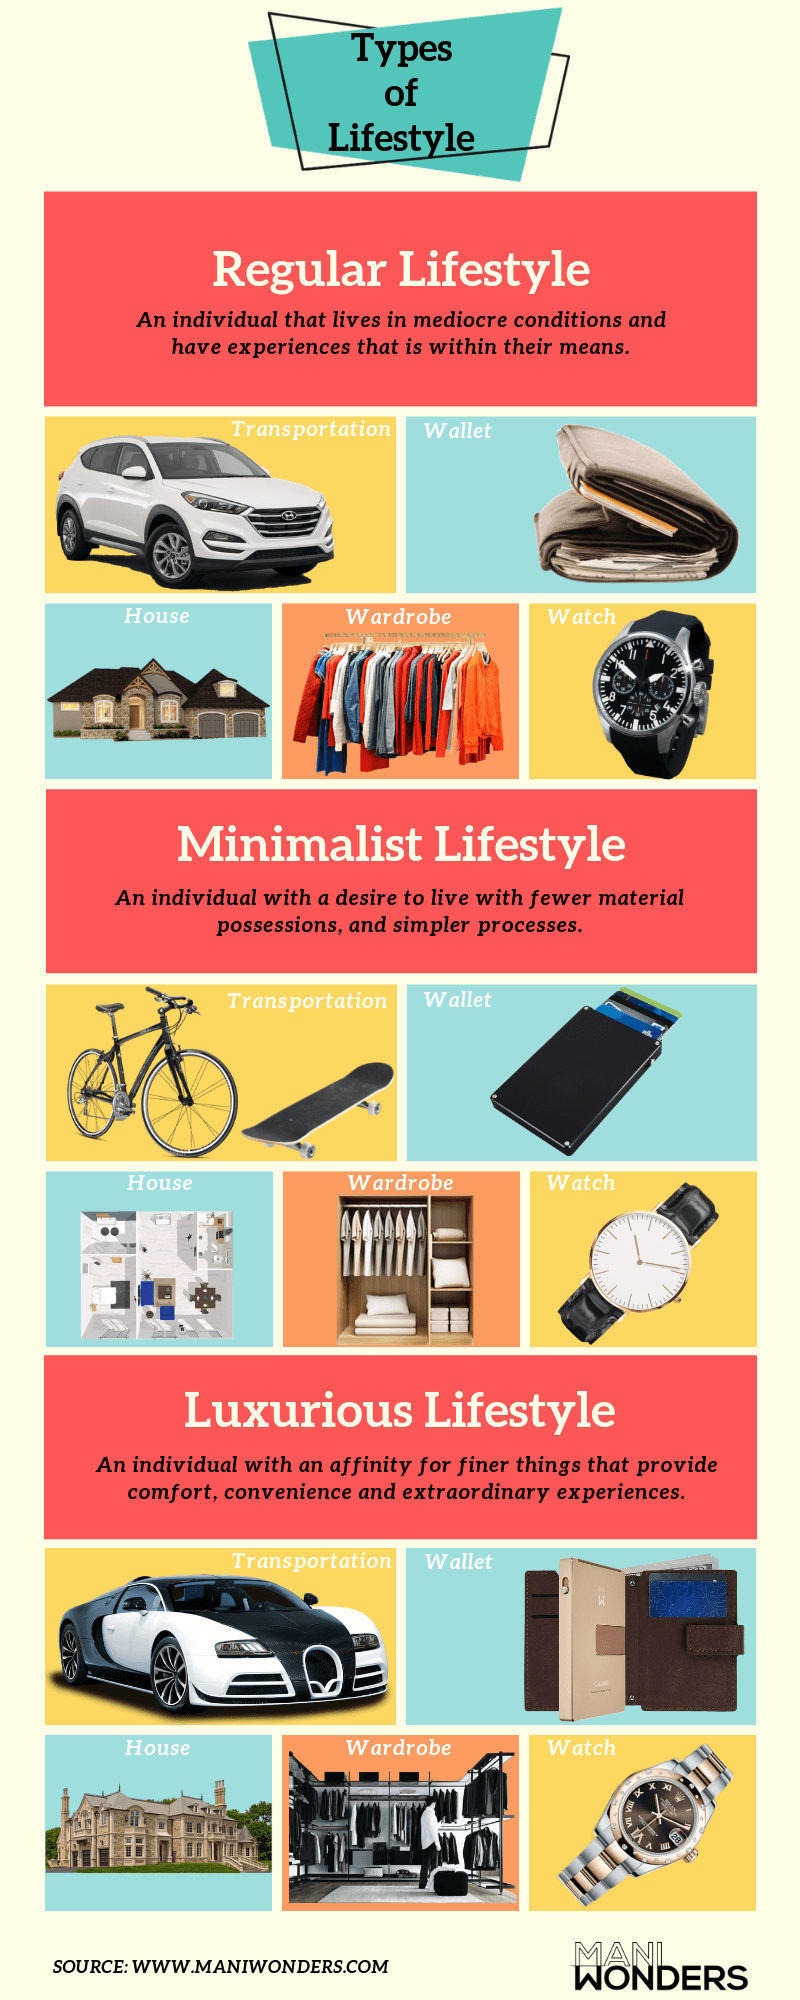 Types-of-Lifestyle-regular-minimalist-luxurious-infographic-plaza